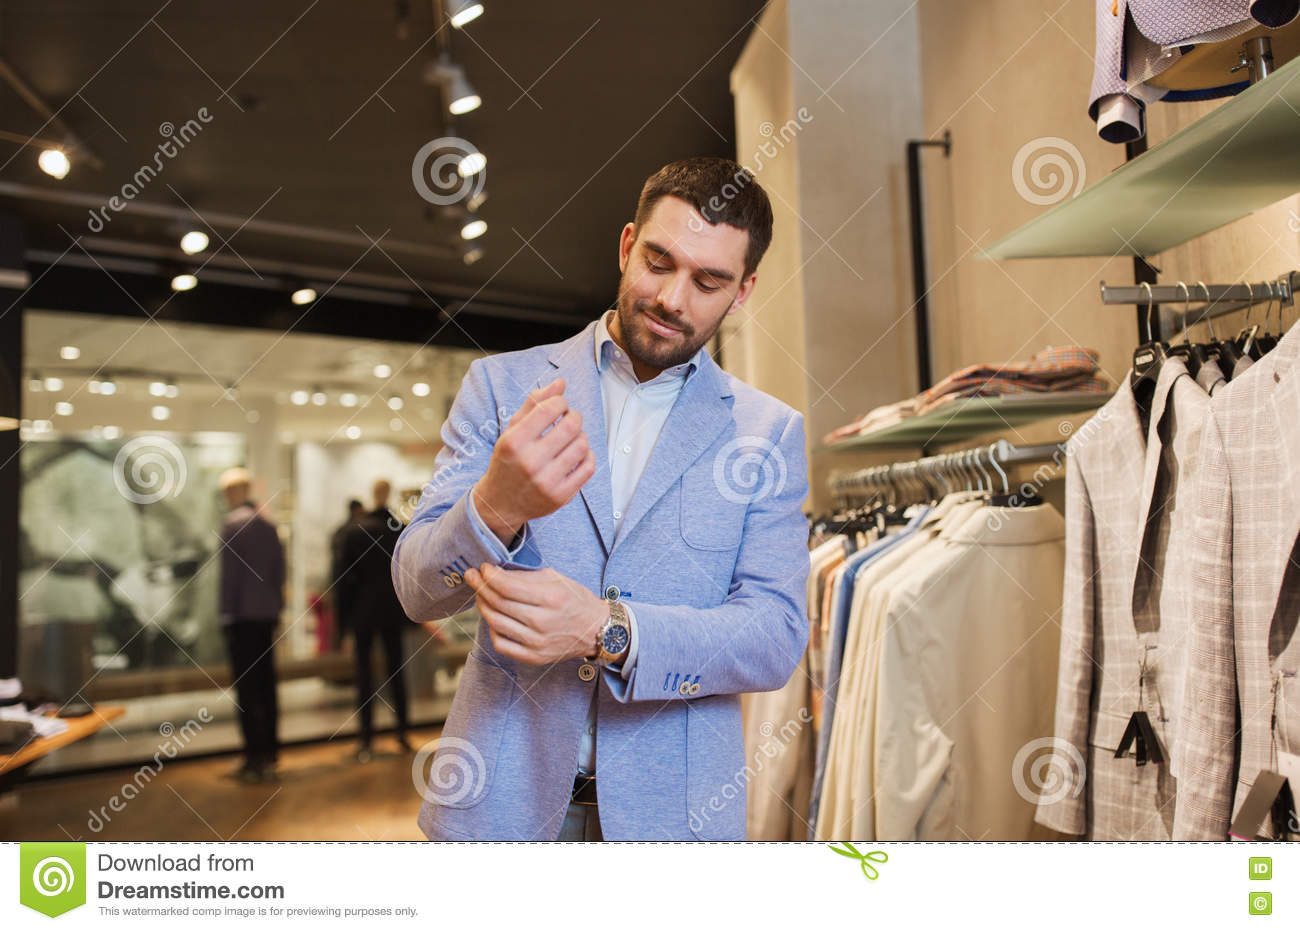 be521e34 Sale, shopping, fashion, style and people concept - elegant young man  choosing and trying jacket on in mall or clothing store